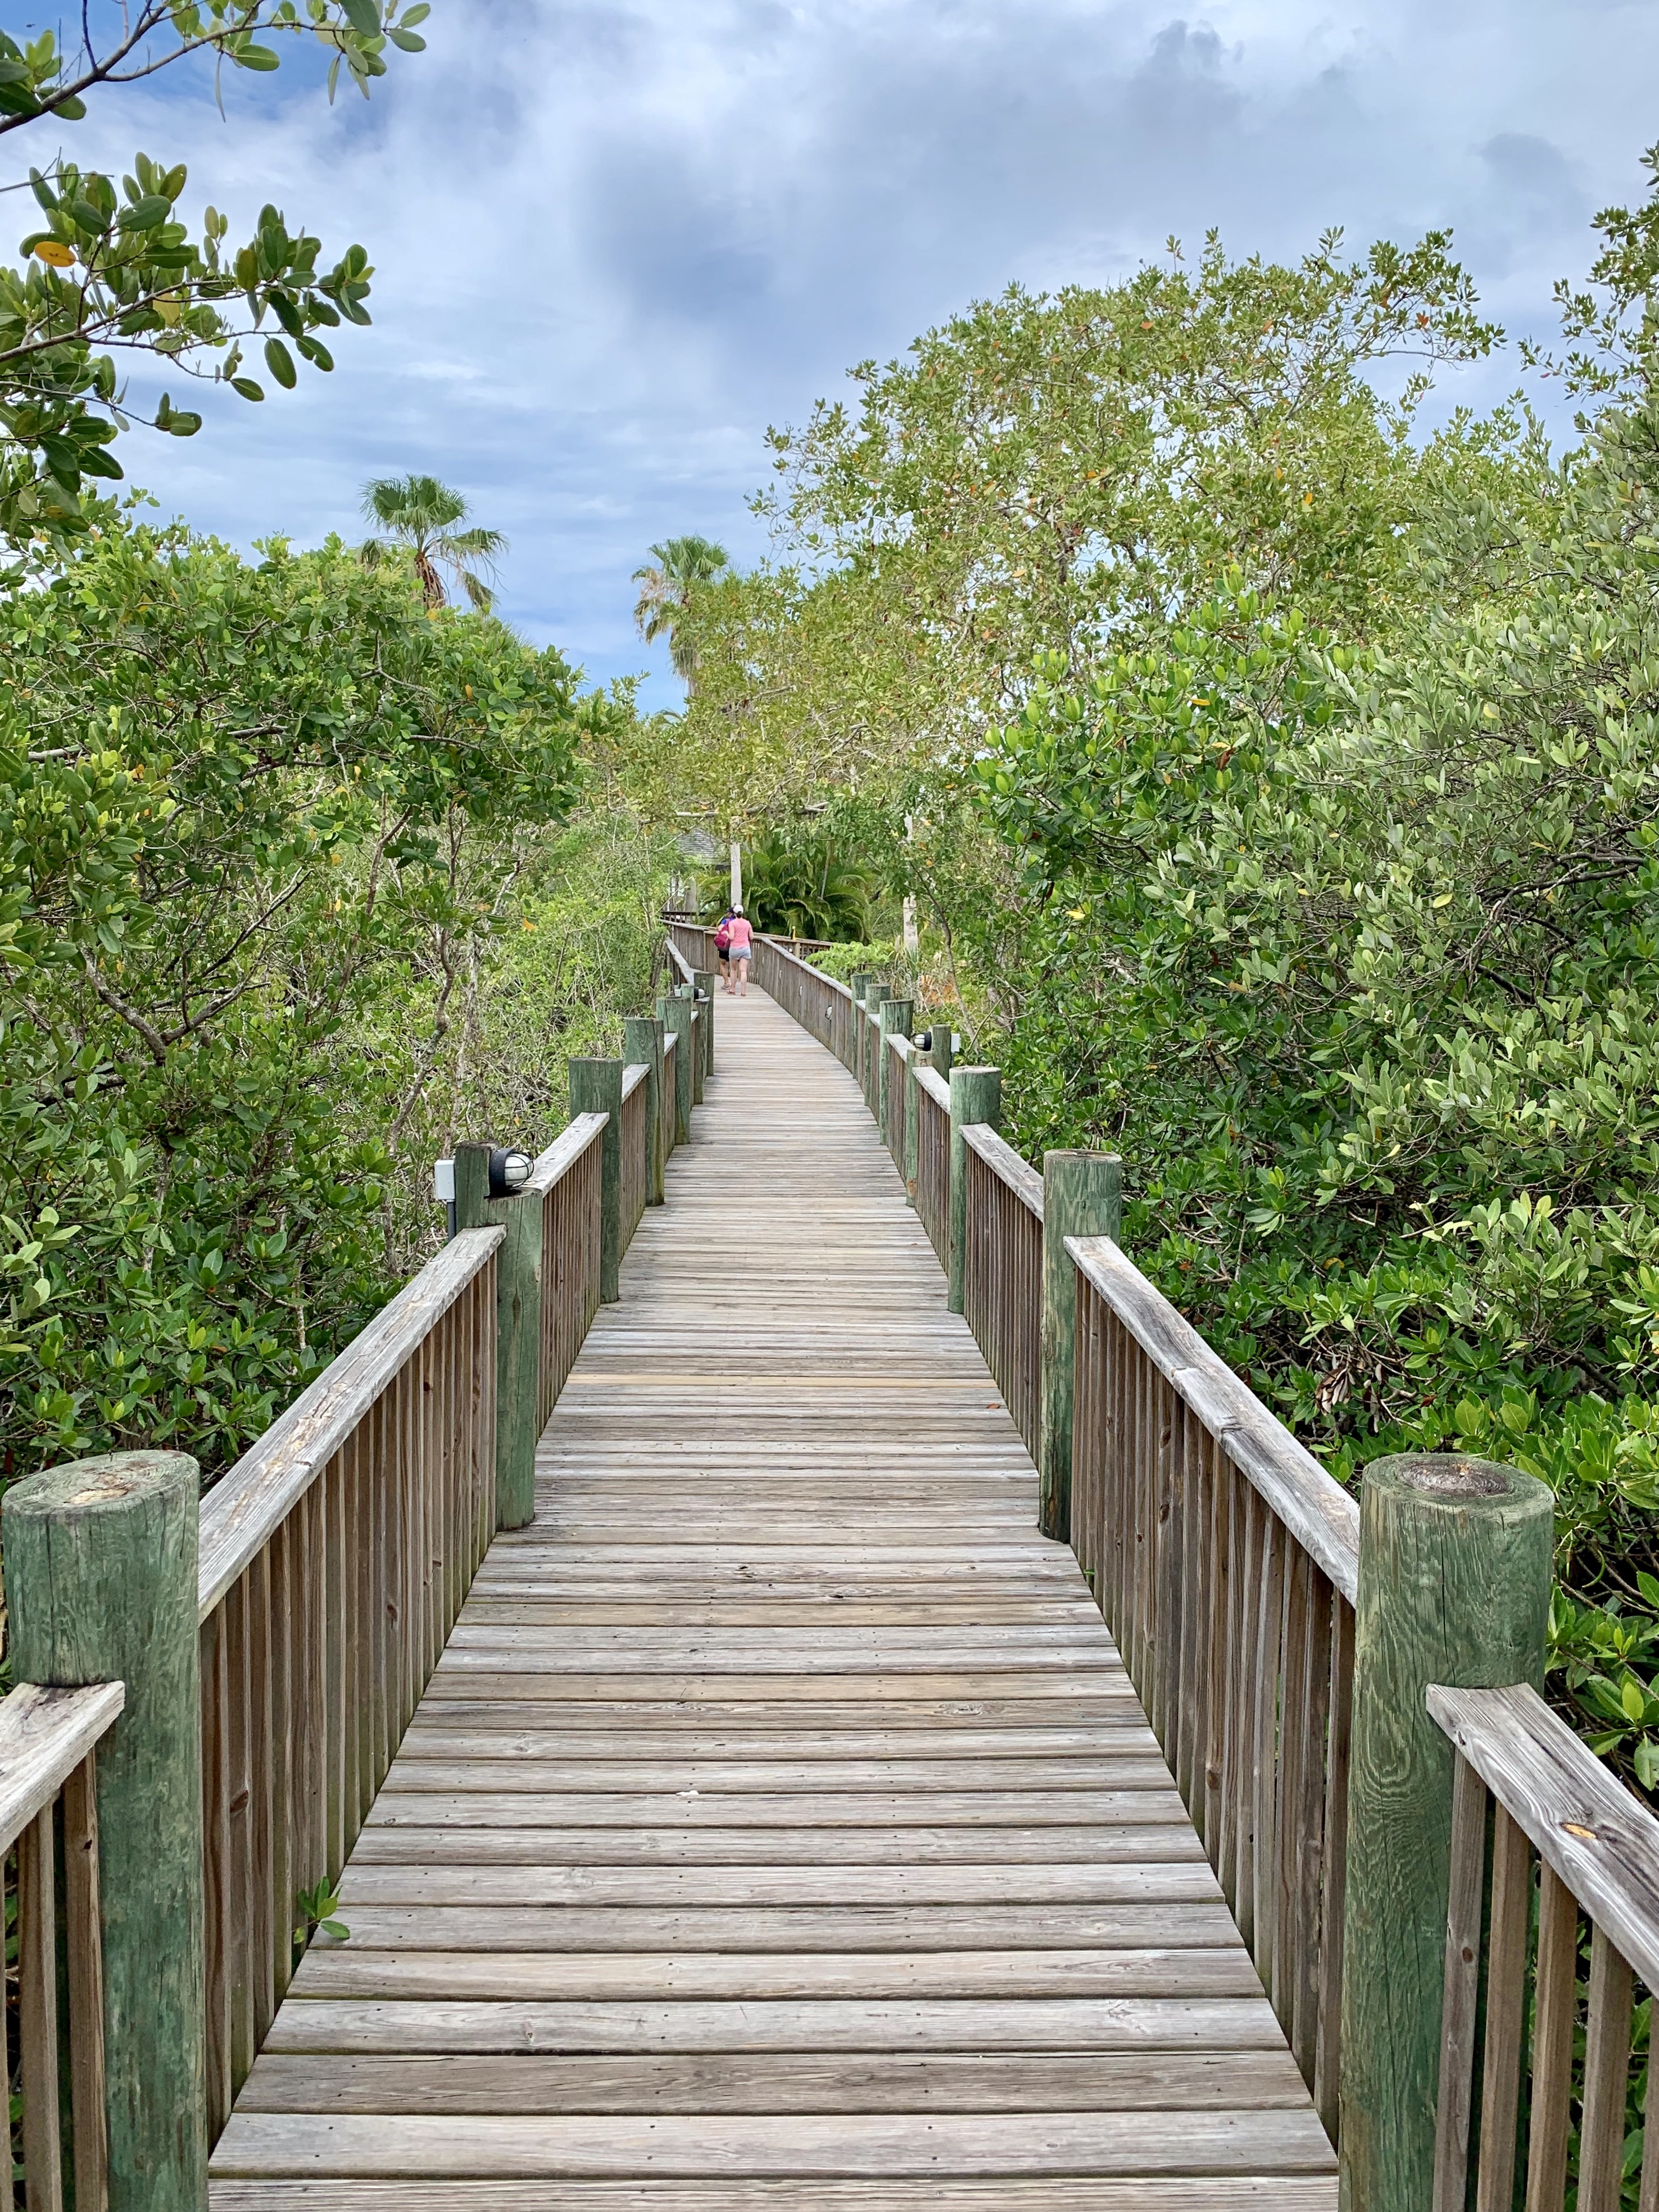 Scenic boardwalk through the mangroves at Palm Island. Photo by AY